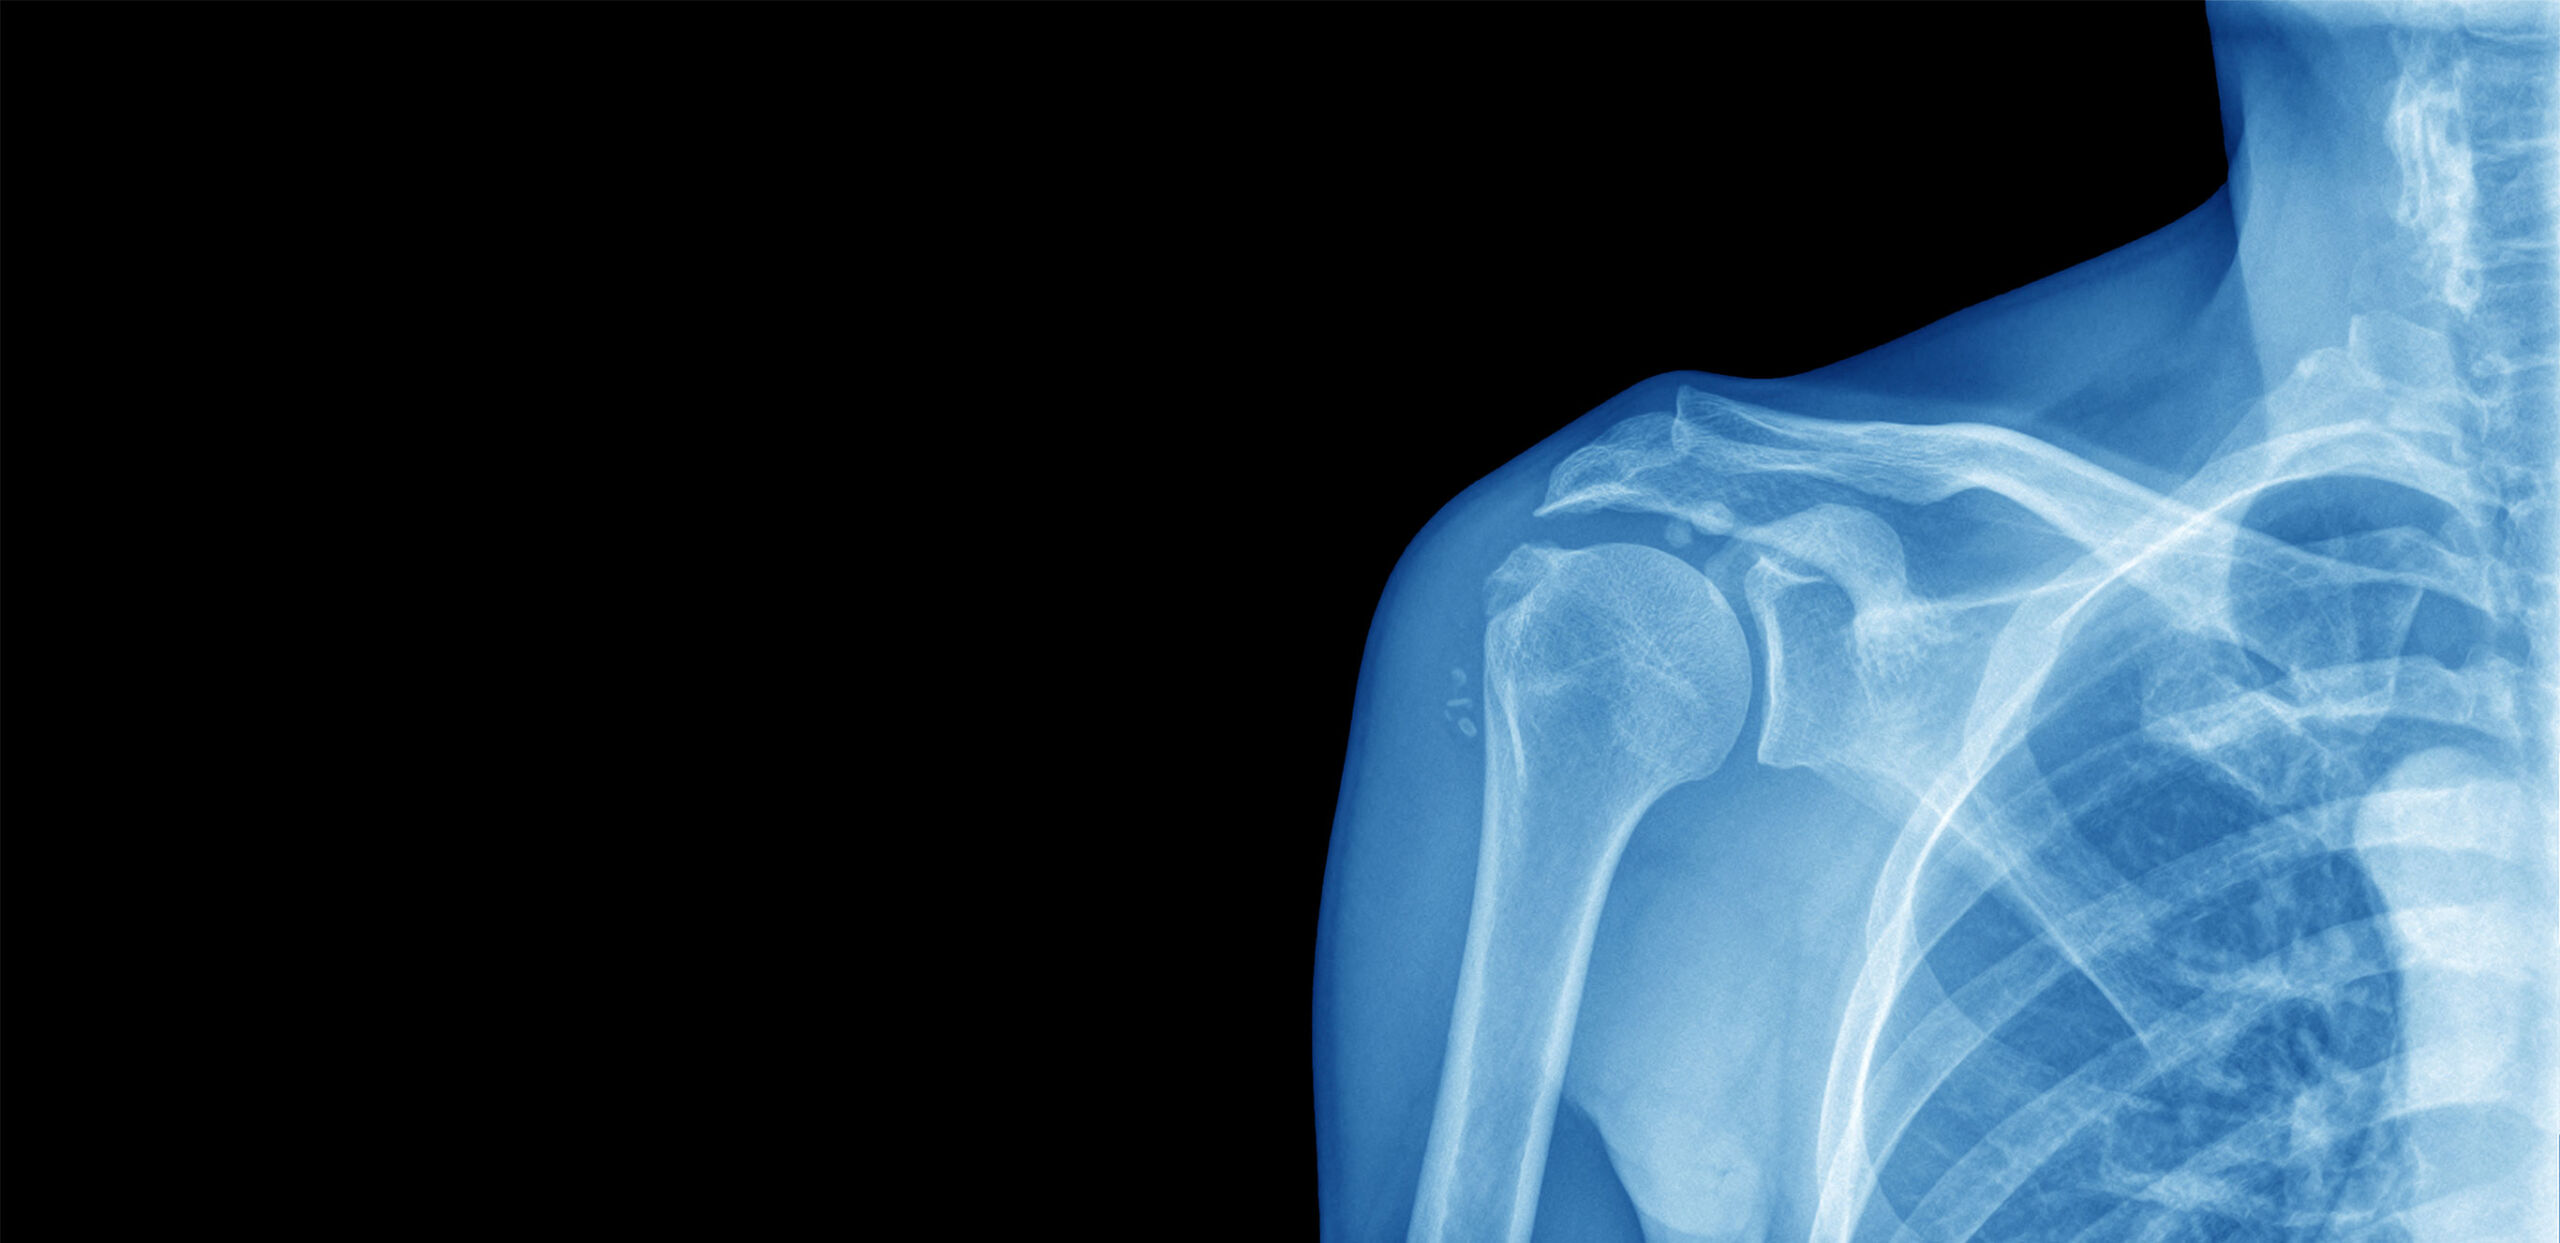 X-ray of human shoulder joint, Cooley Dickinson Hospital, 30 Locust Street, Northampton, MA 01060.